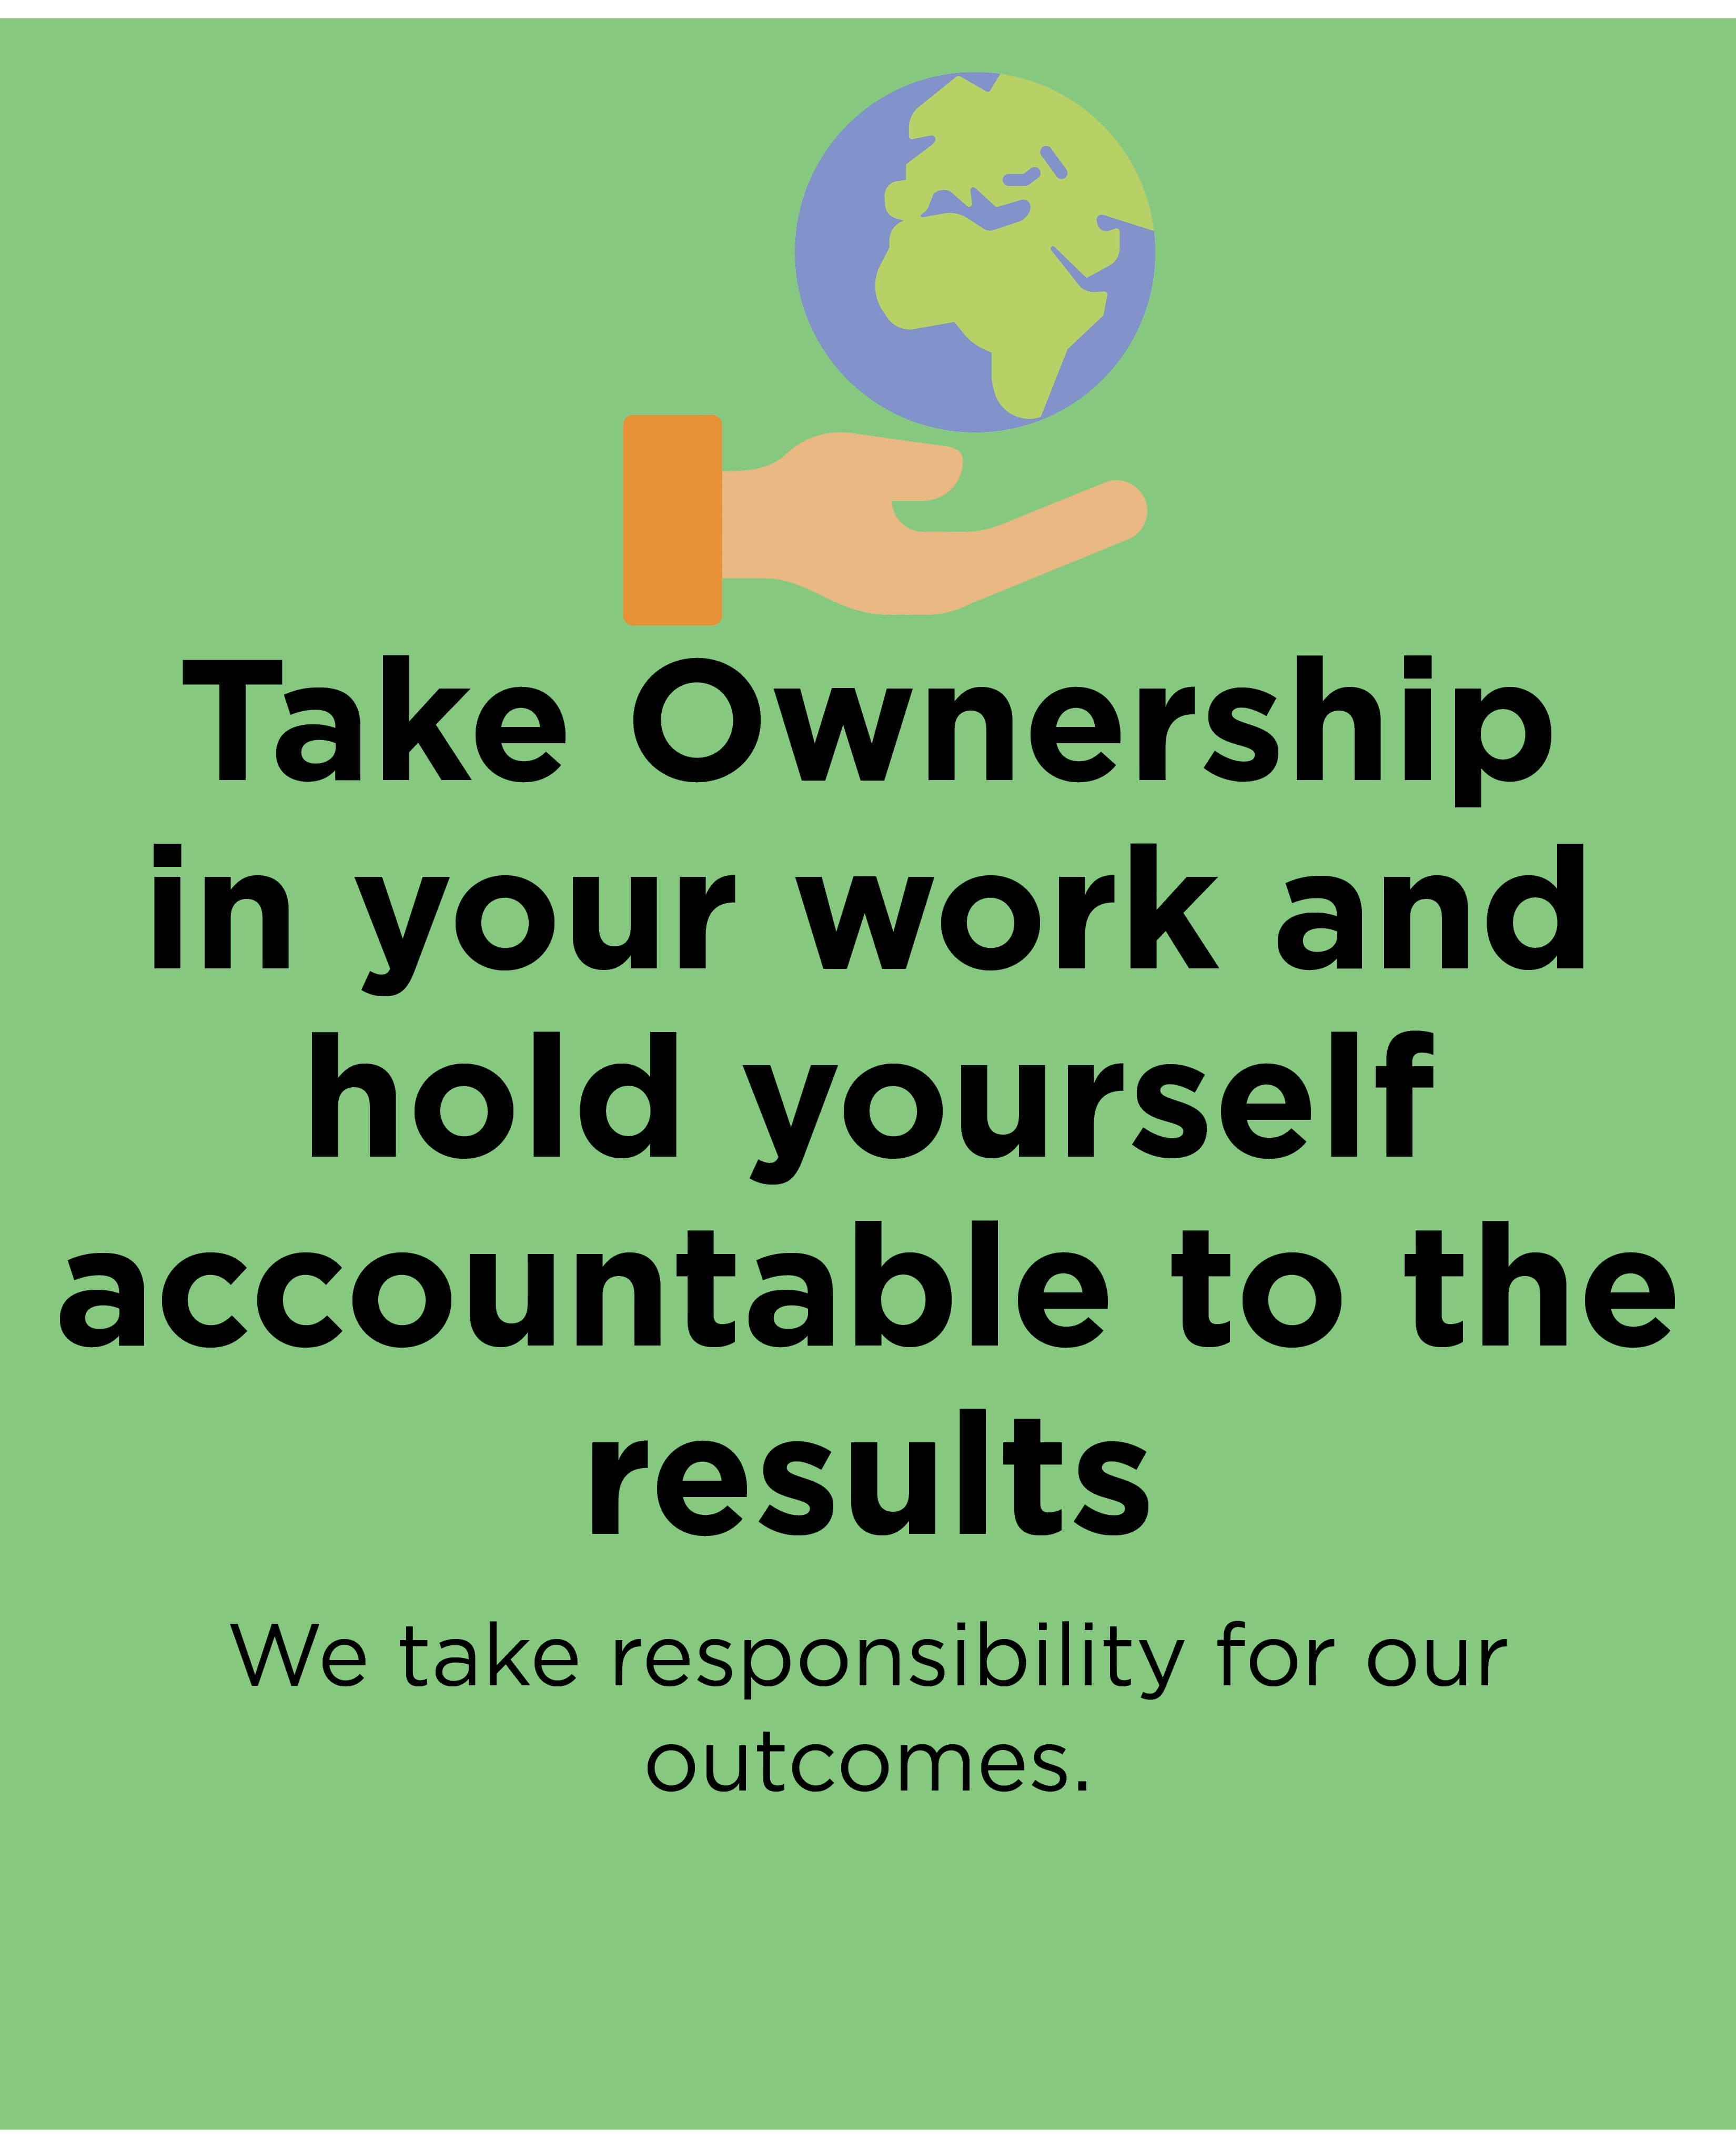 Take Ownership in your work - Batten and Shaw